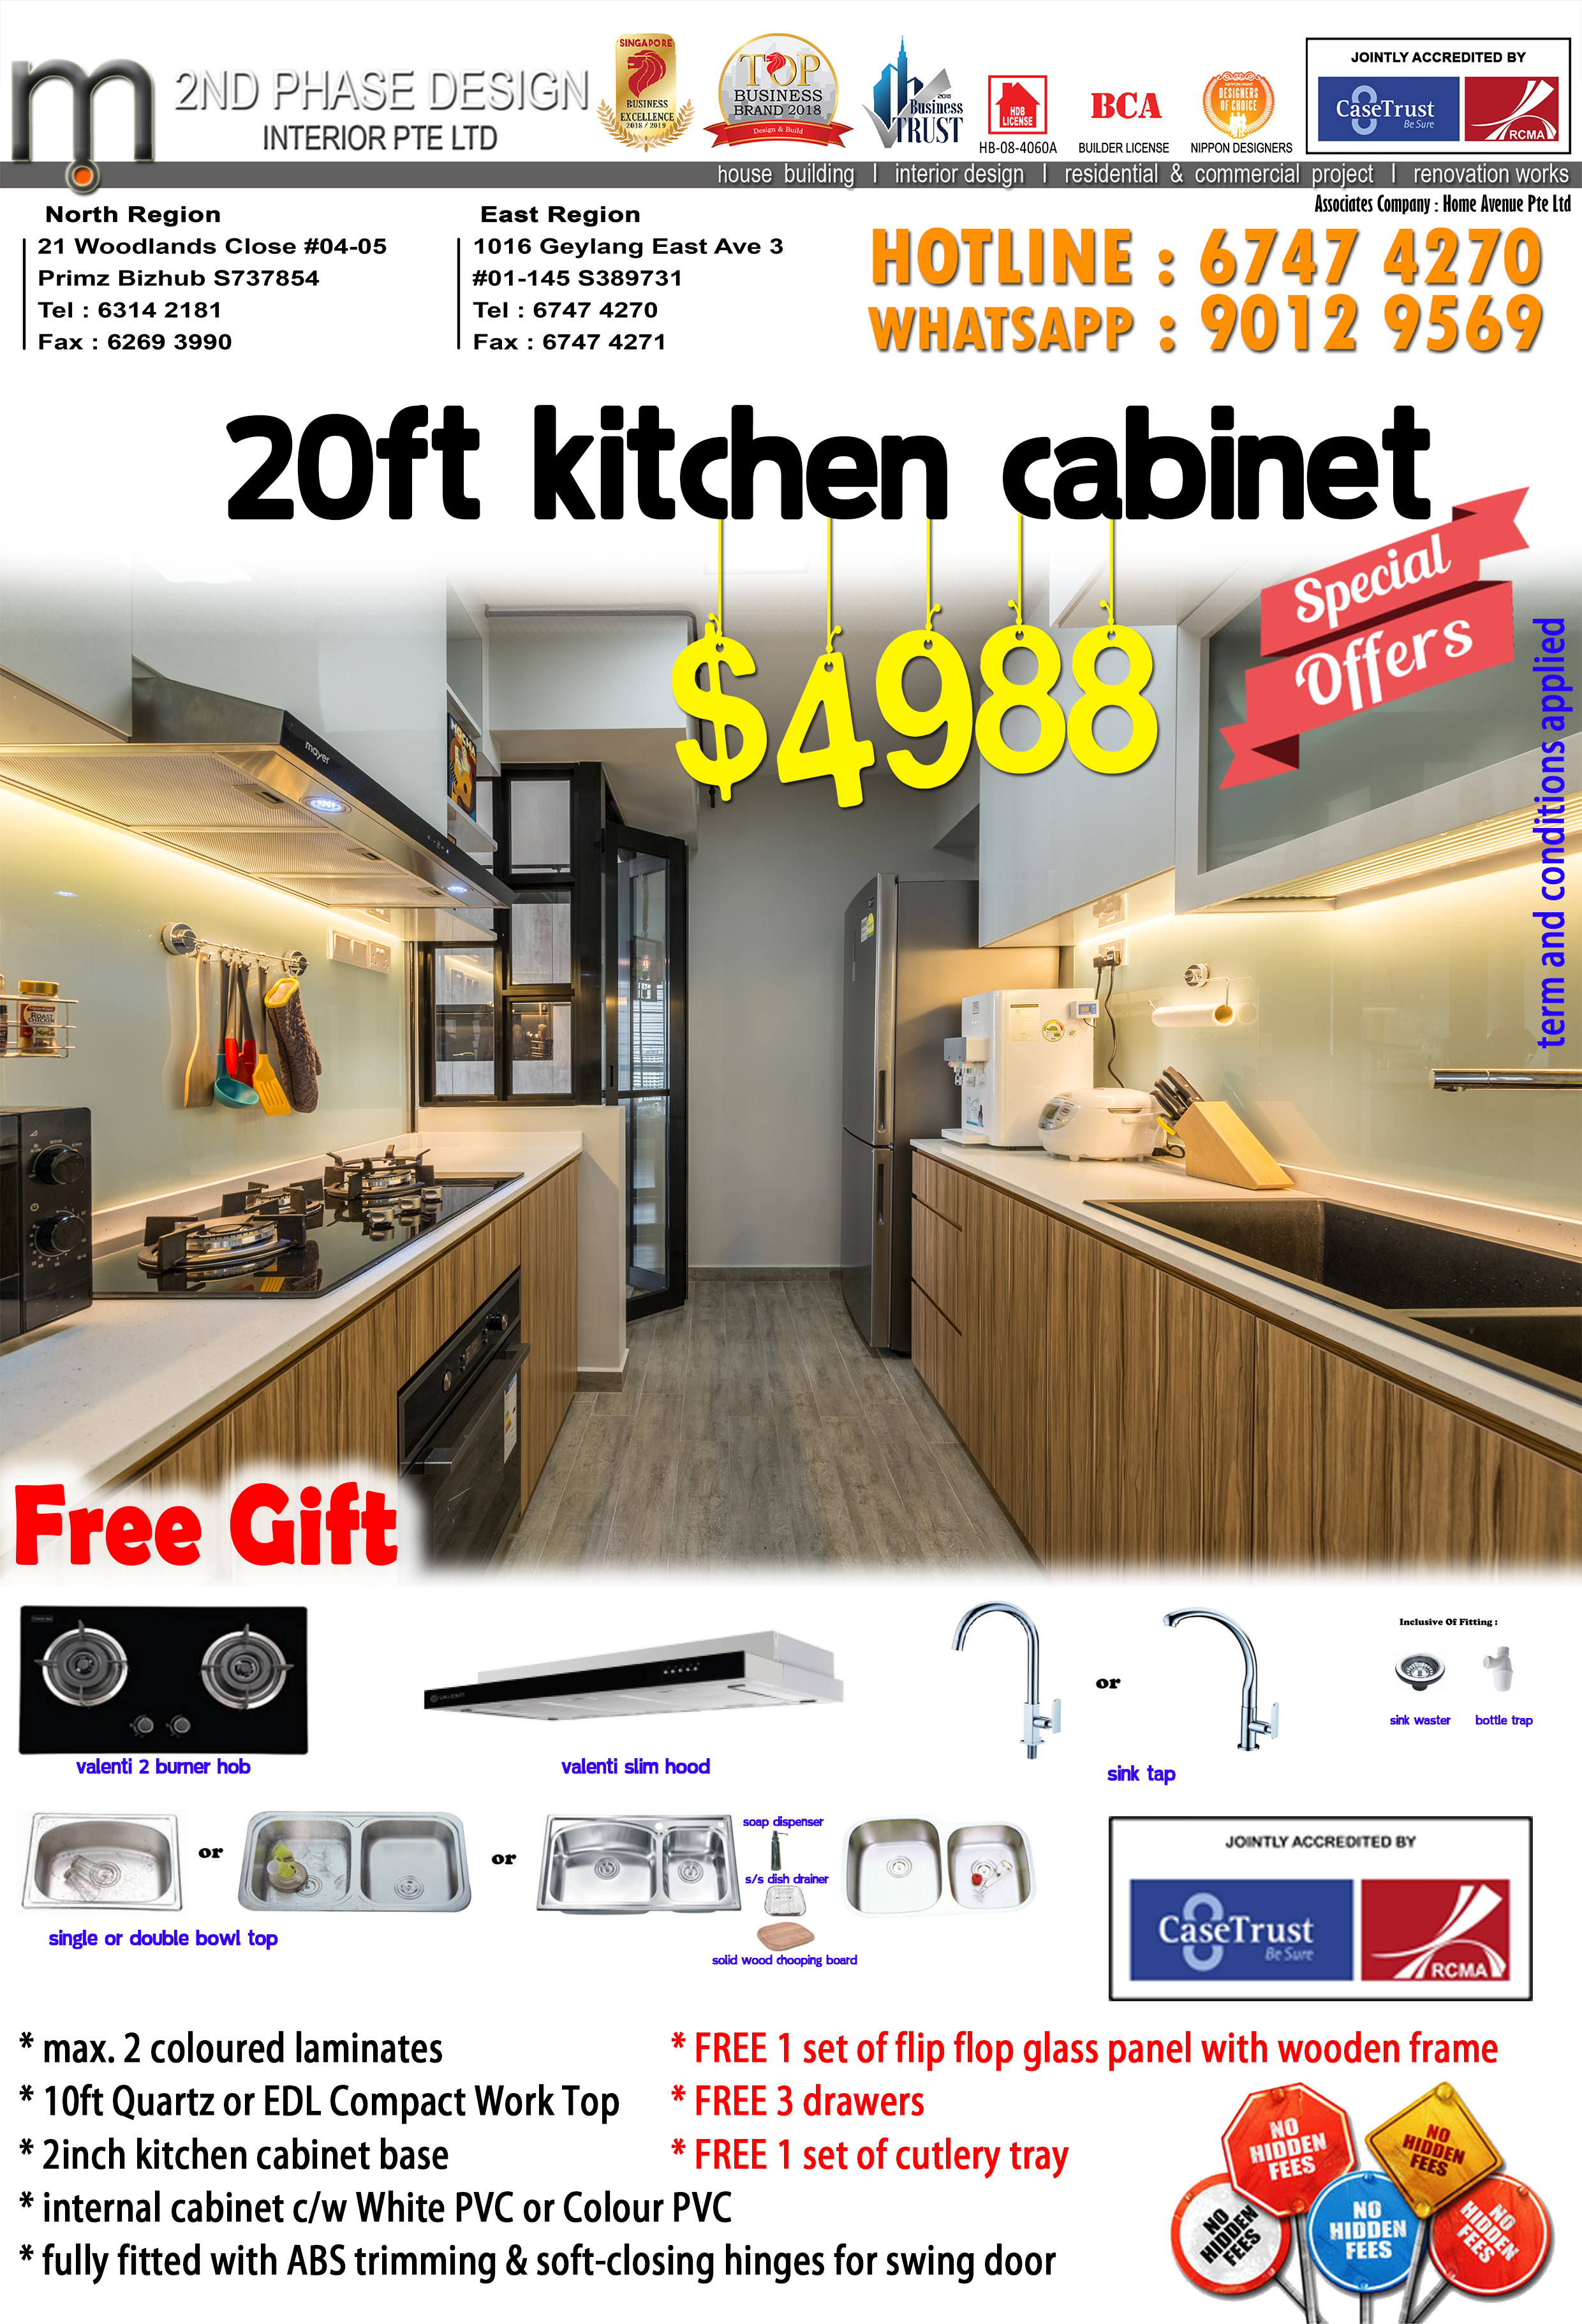 Latest Products Promotion | 2nd Phase Design